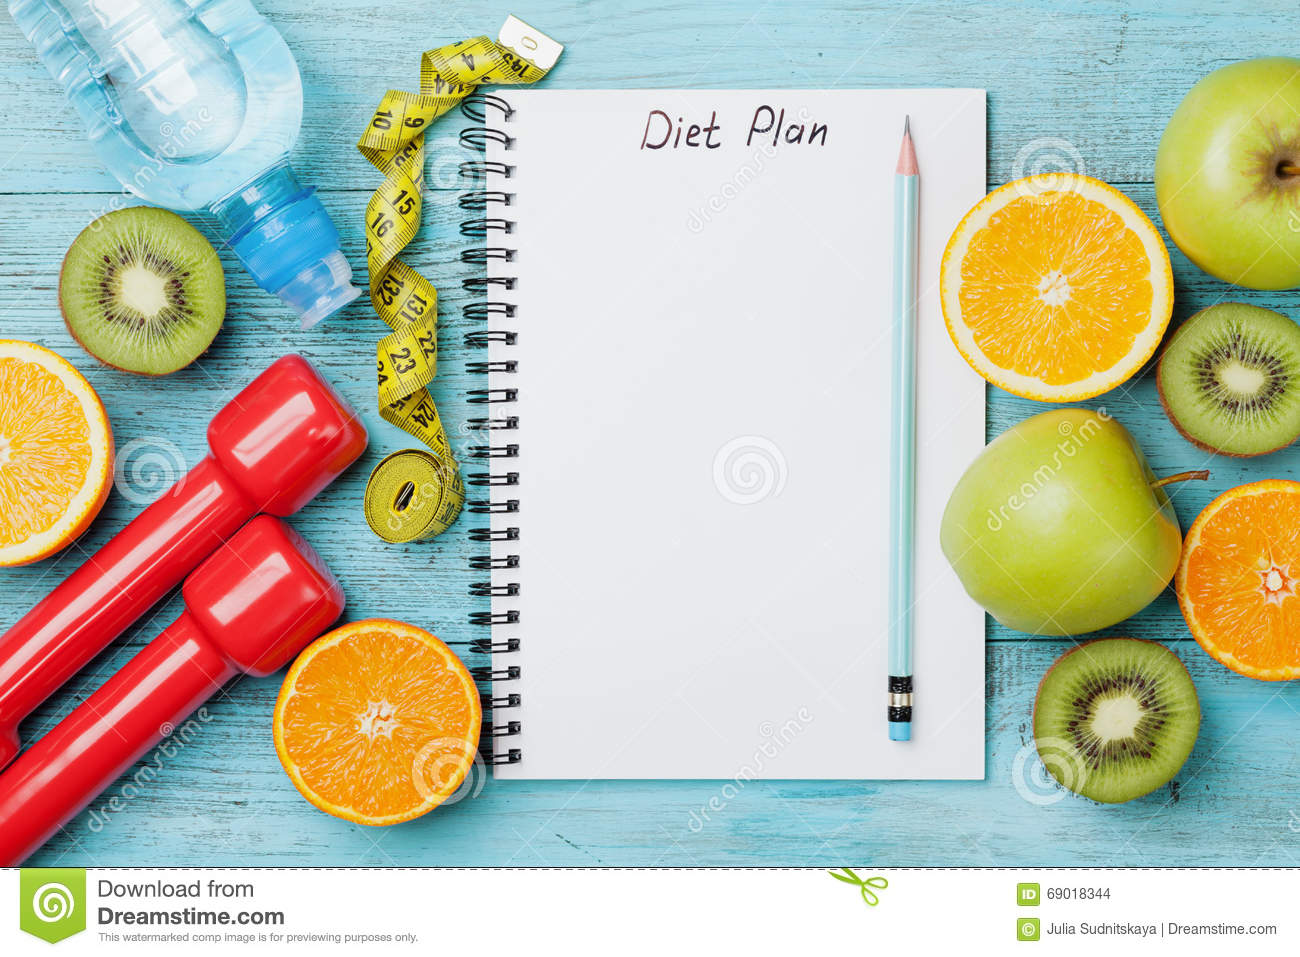 stringent diet plan